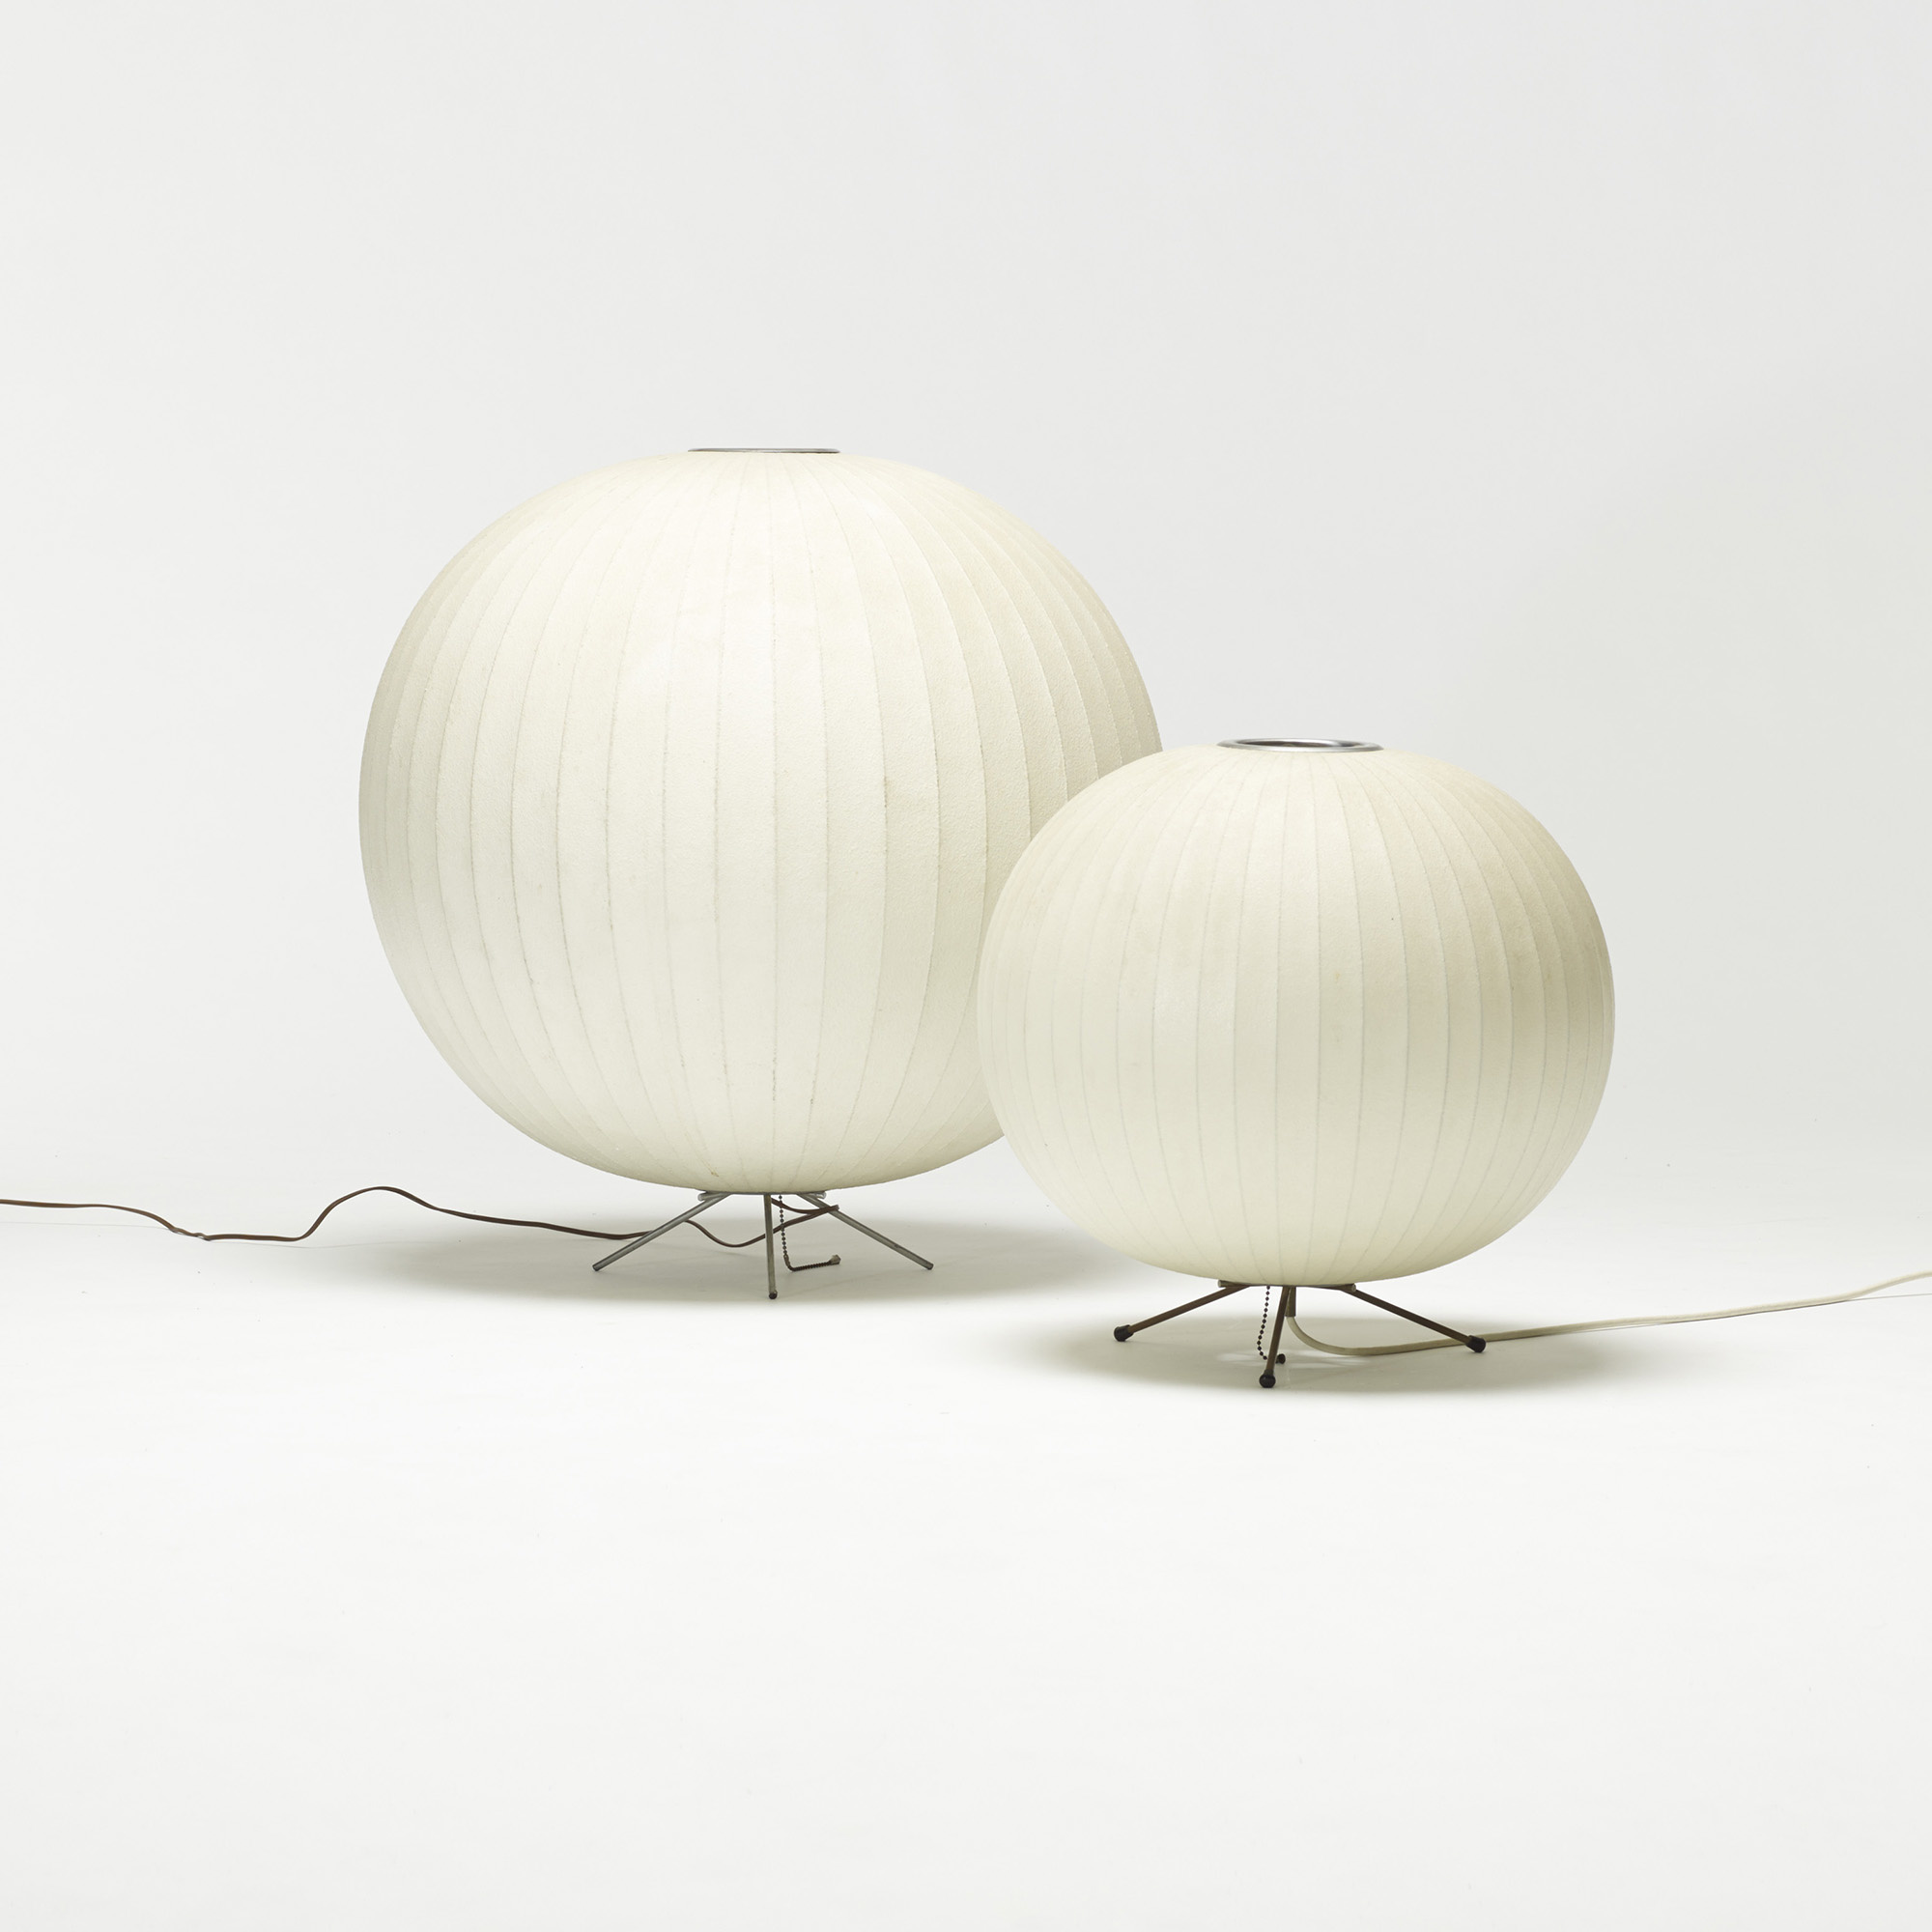 437 george nelson associates collection of five bubble table lamps 2 of